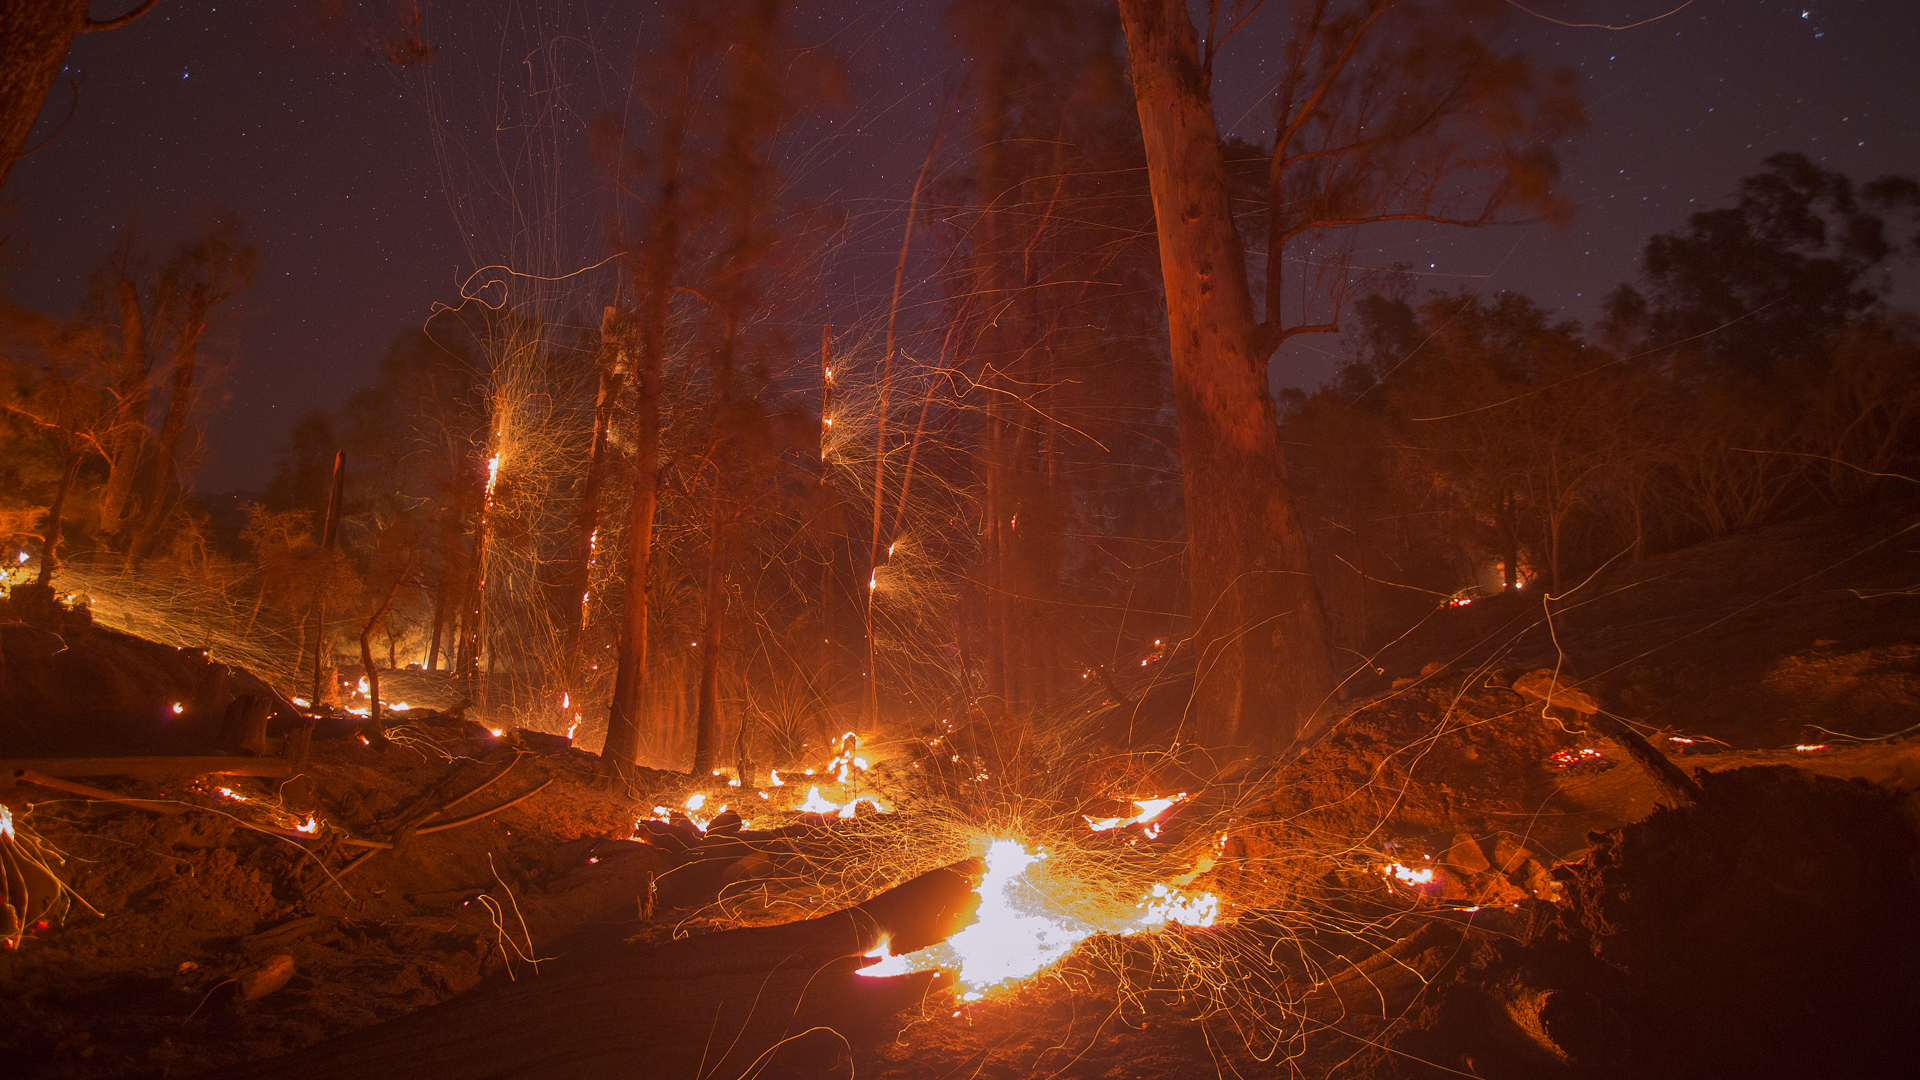 Thomas Fire, California wildfires, Montecito, wind blows embers from smoldering trees76406481-159532